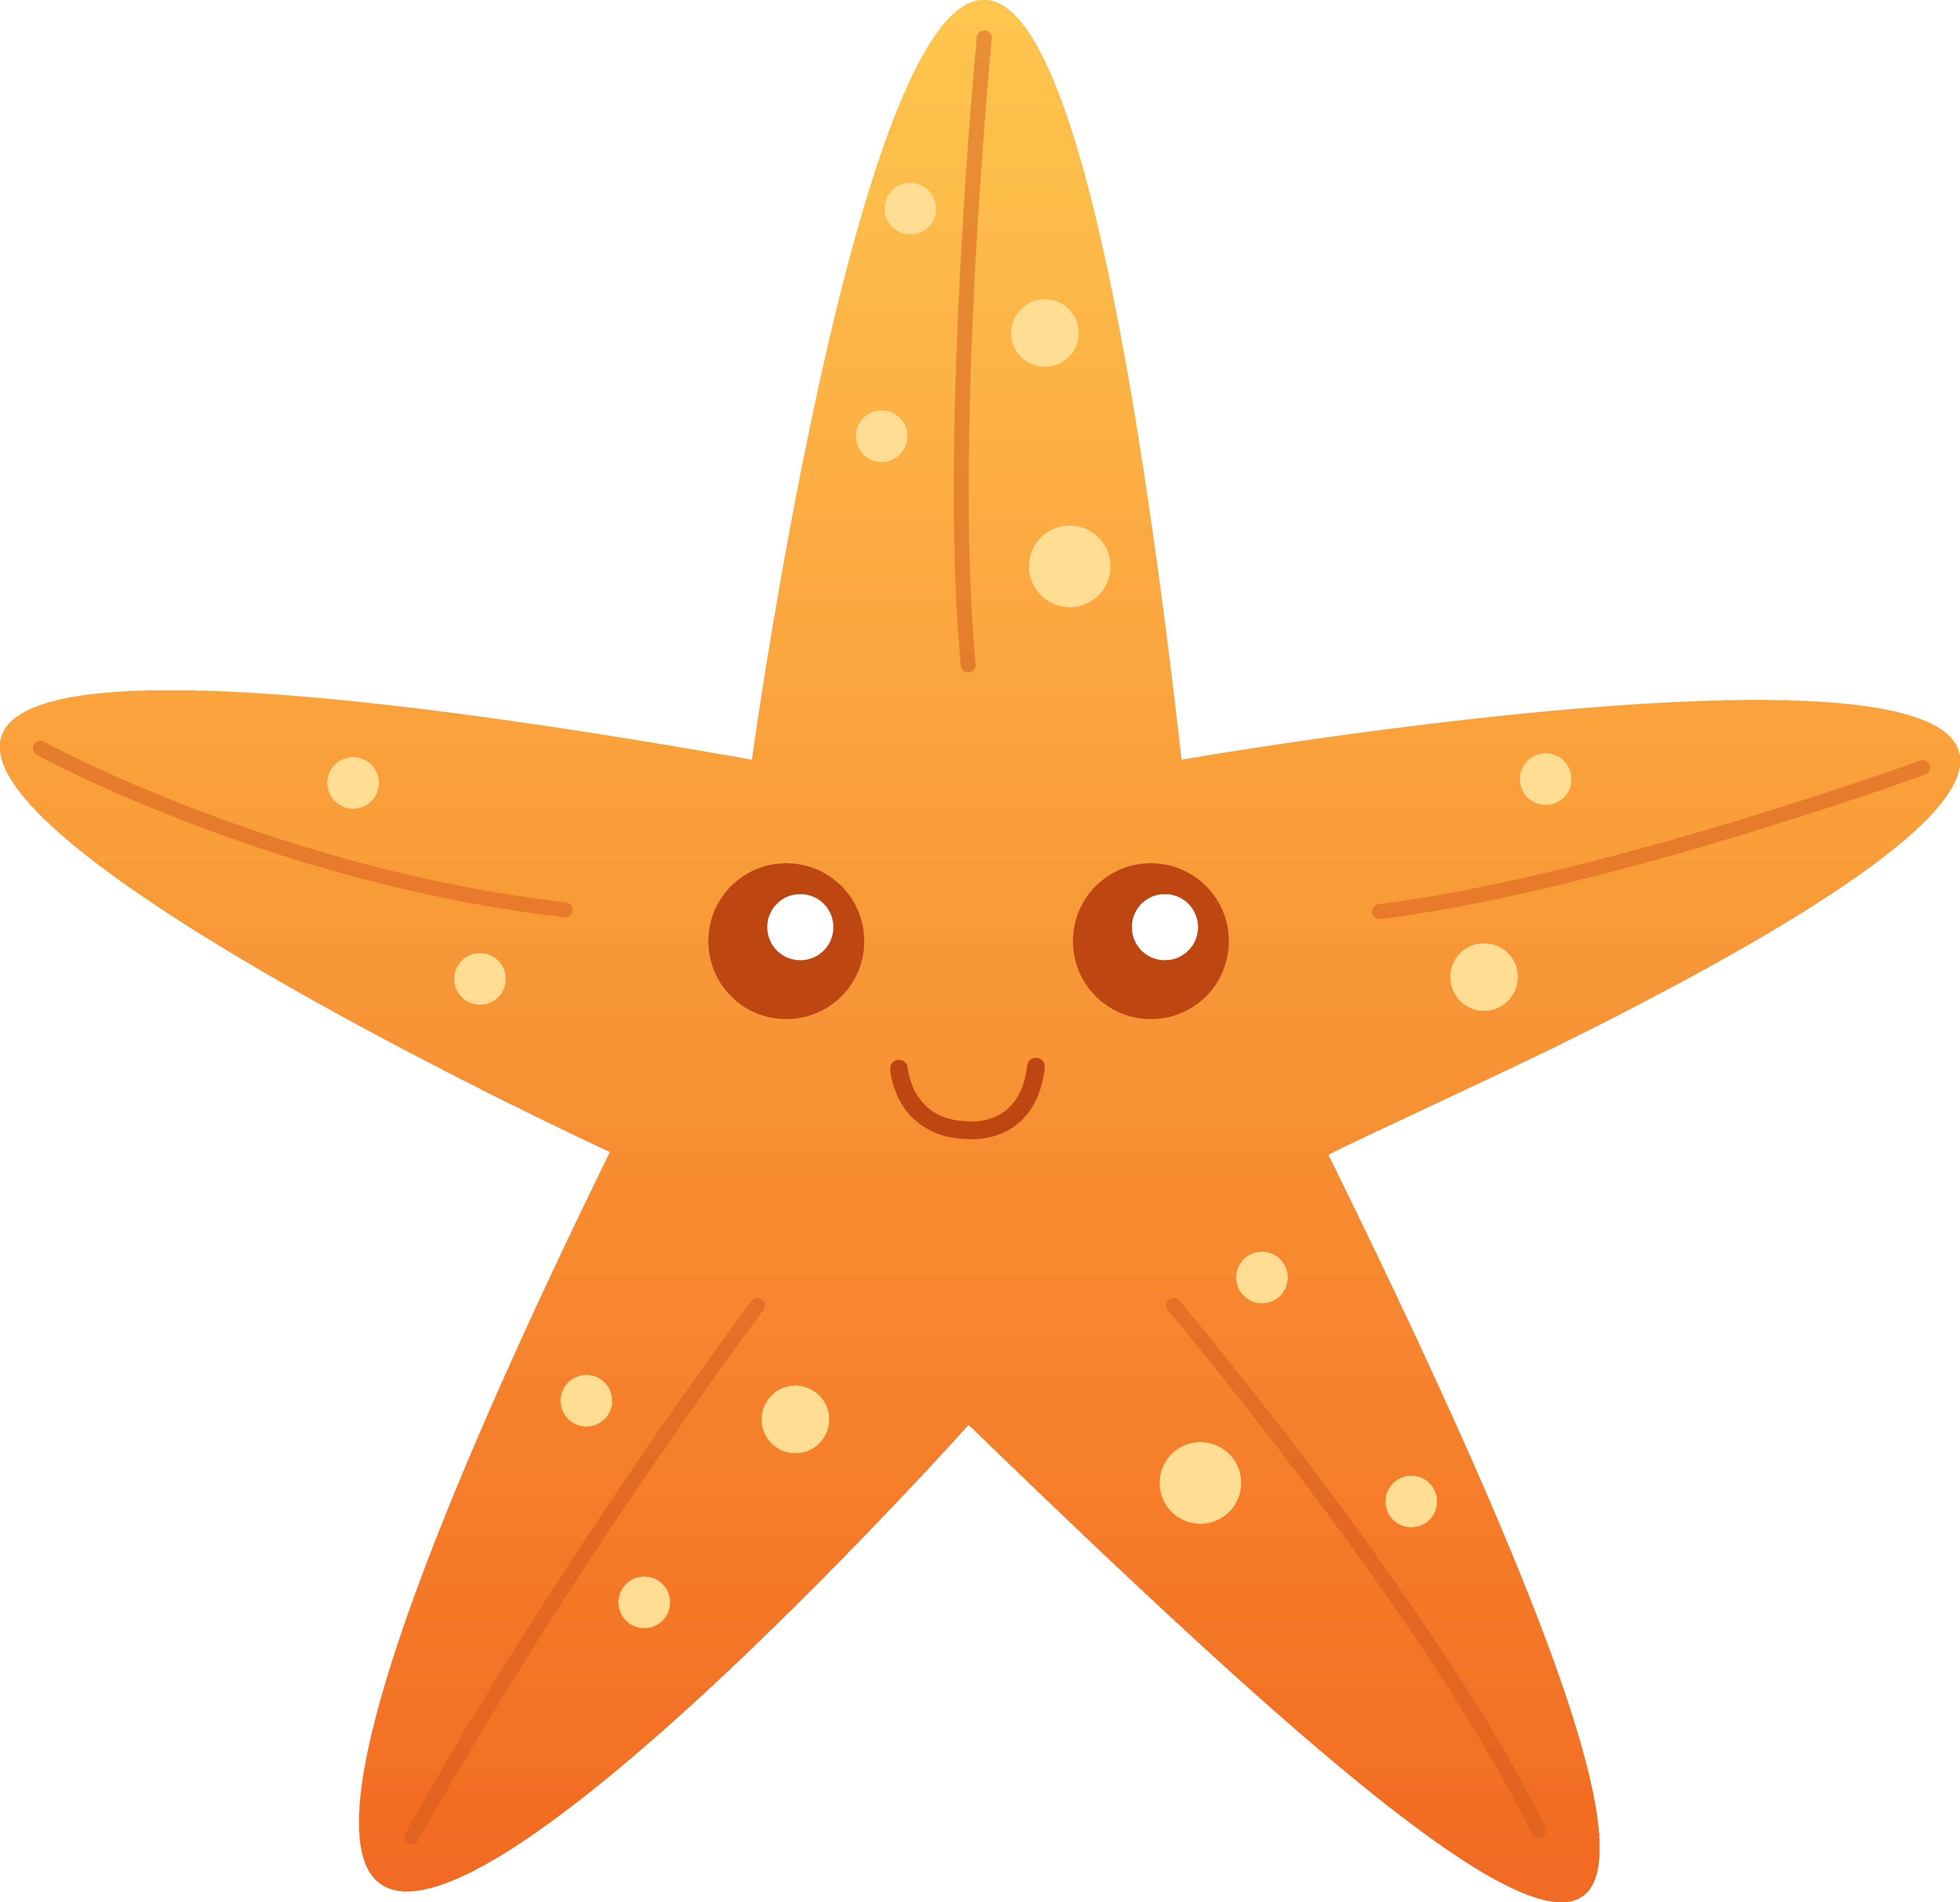 Cute starfish clipart clipart panda free clipart images for Free online drawing